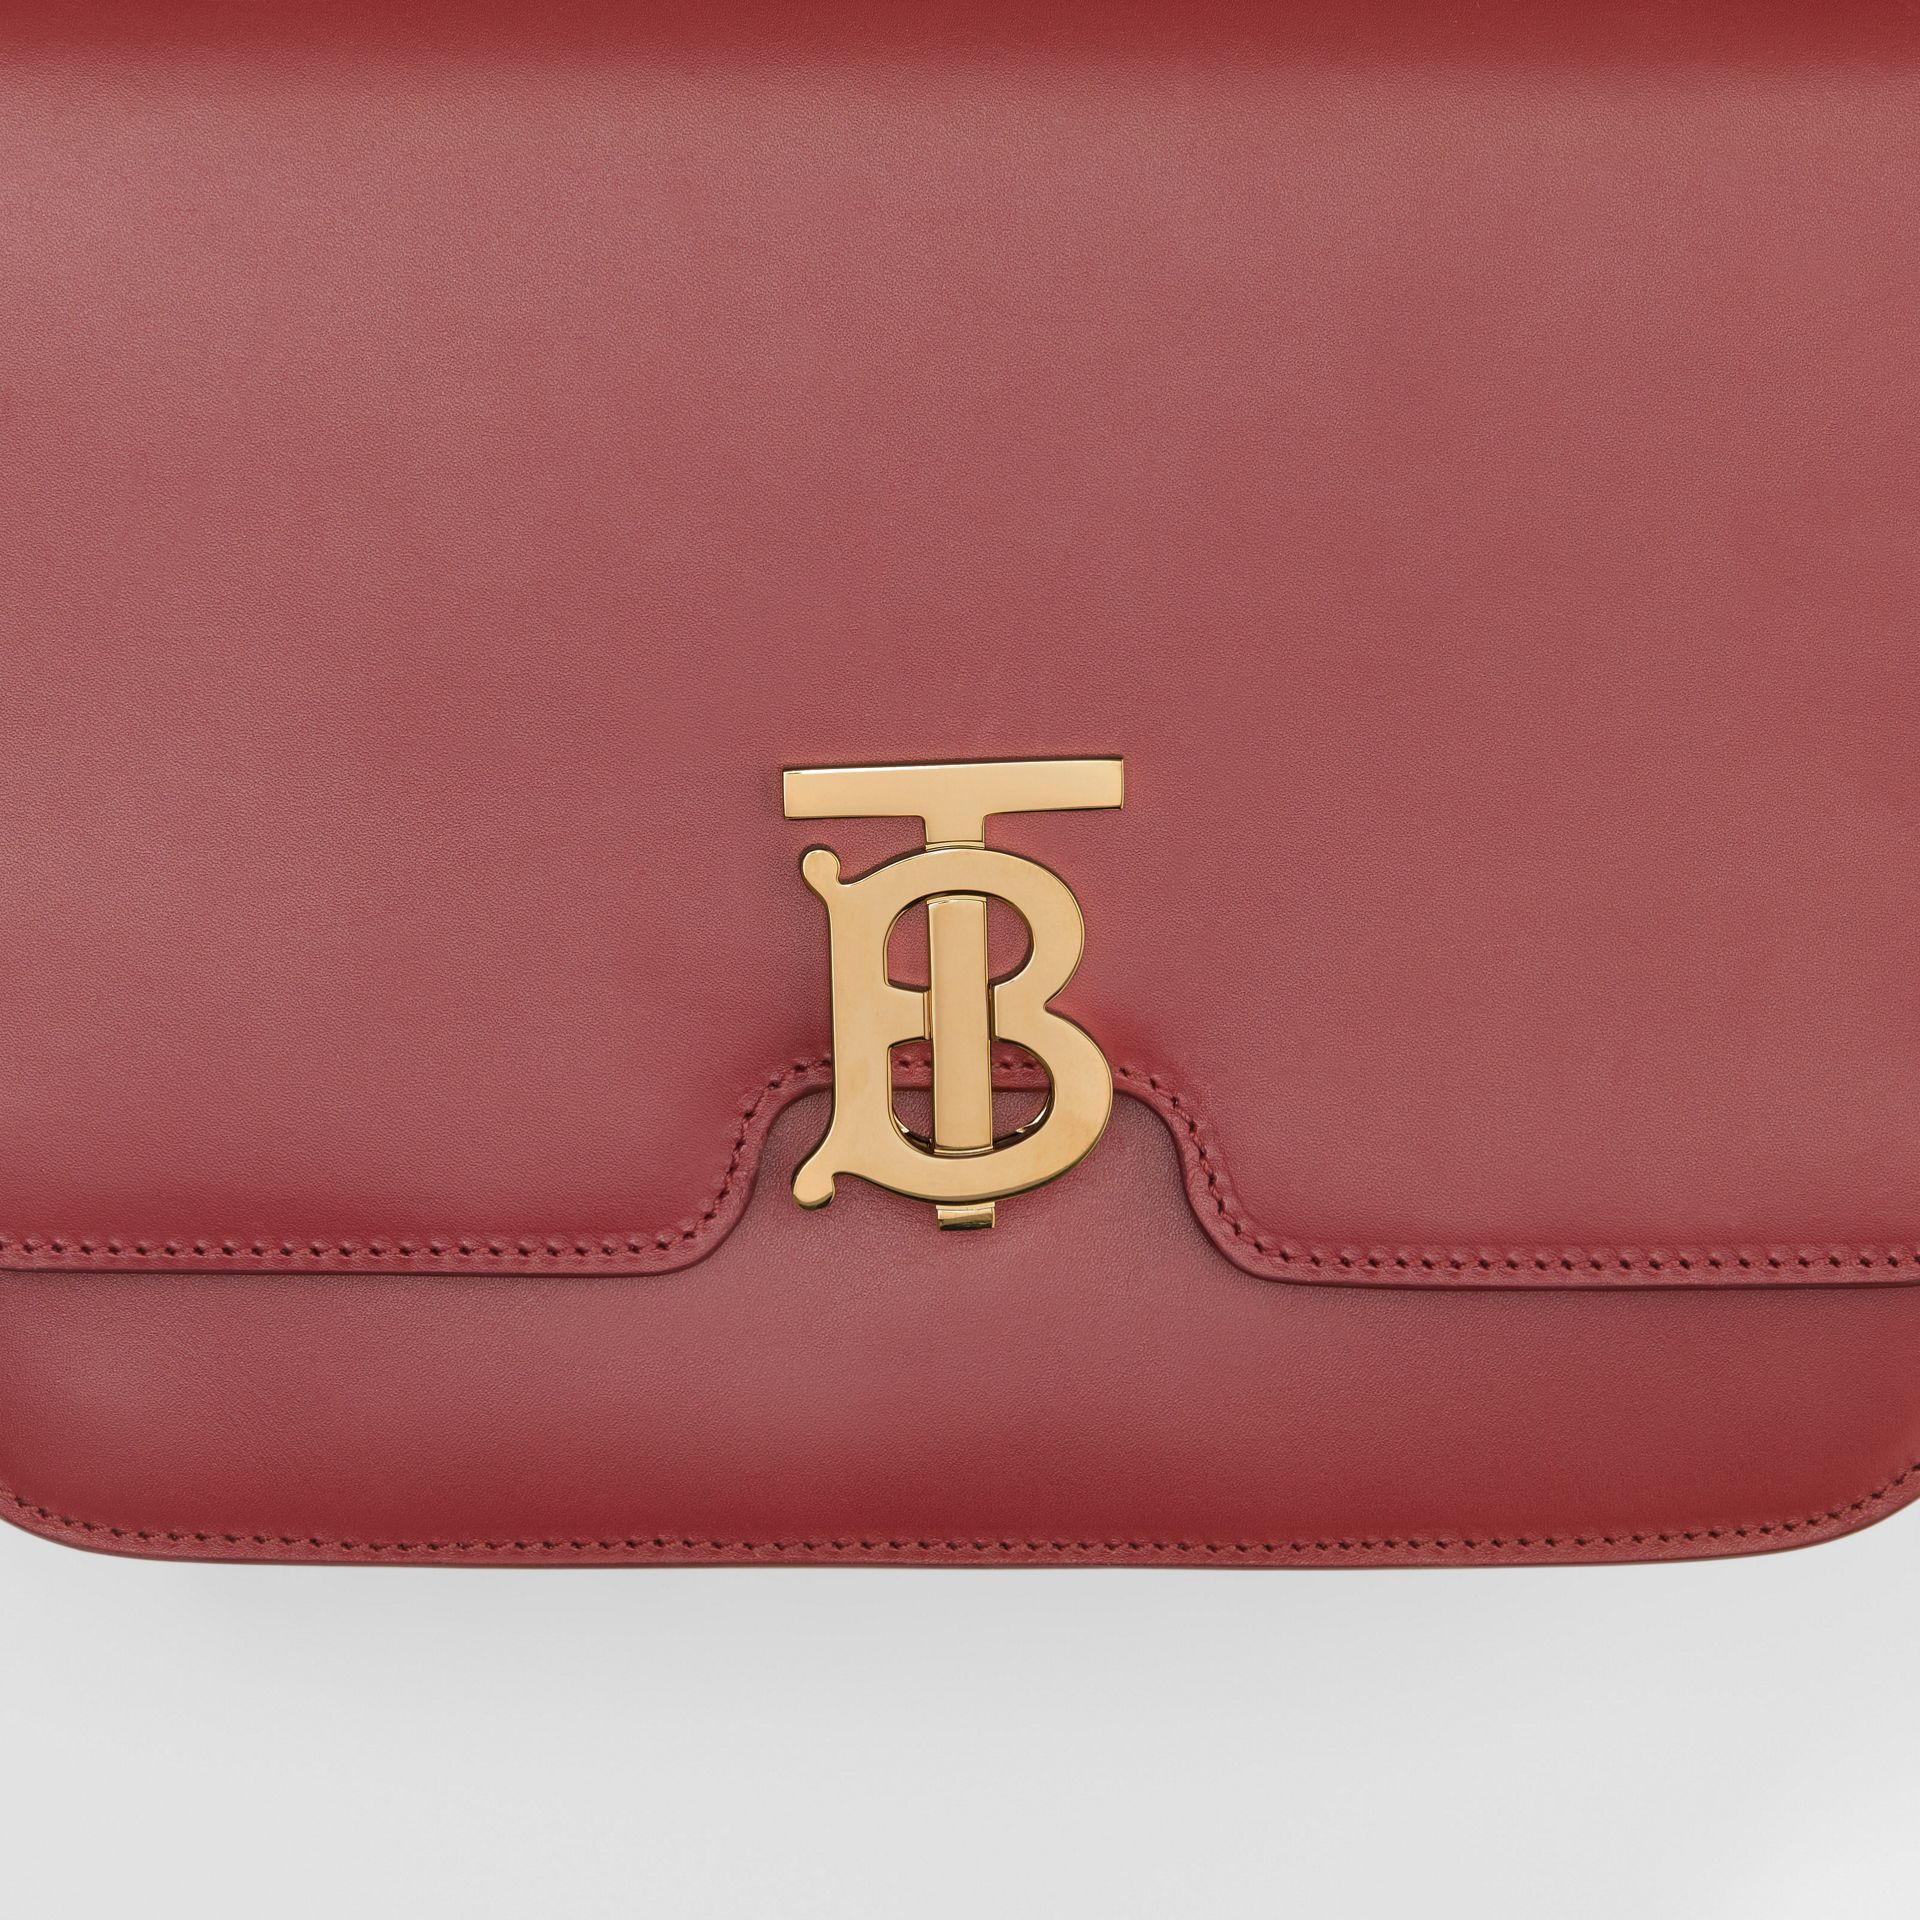 Medium Leather TB Bag in Crimson - Women | Burberry United Kingdom - gallery image 1